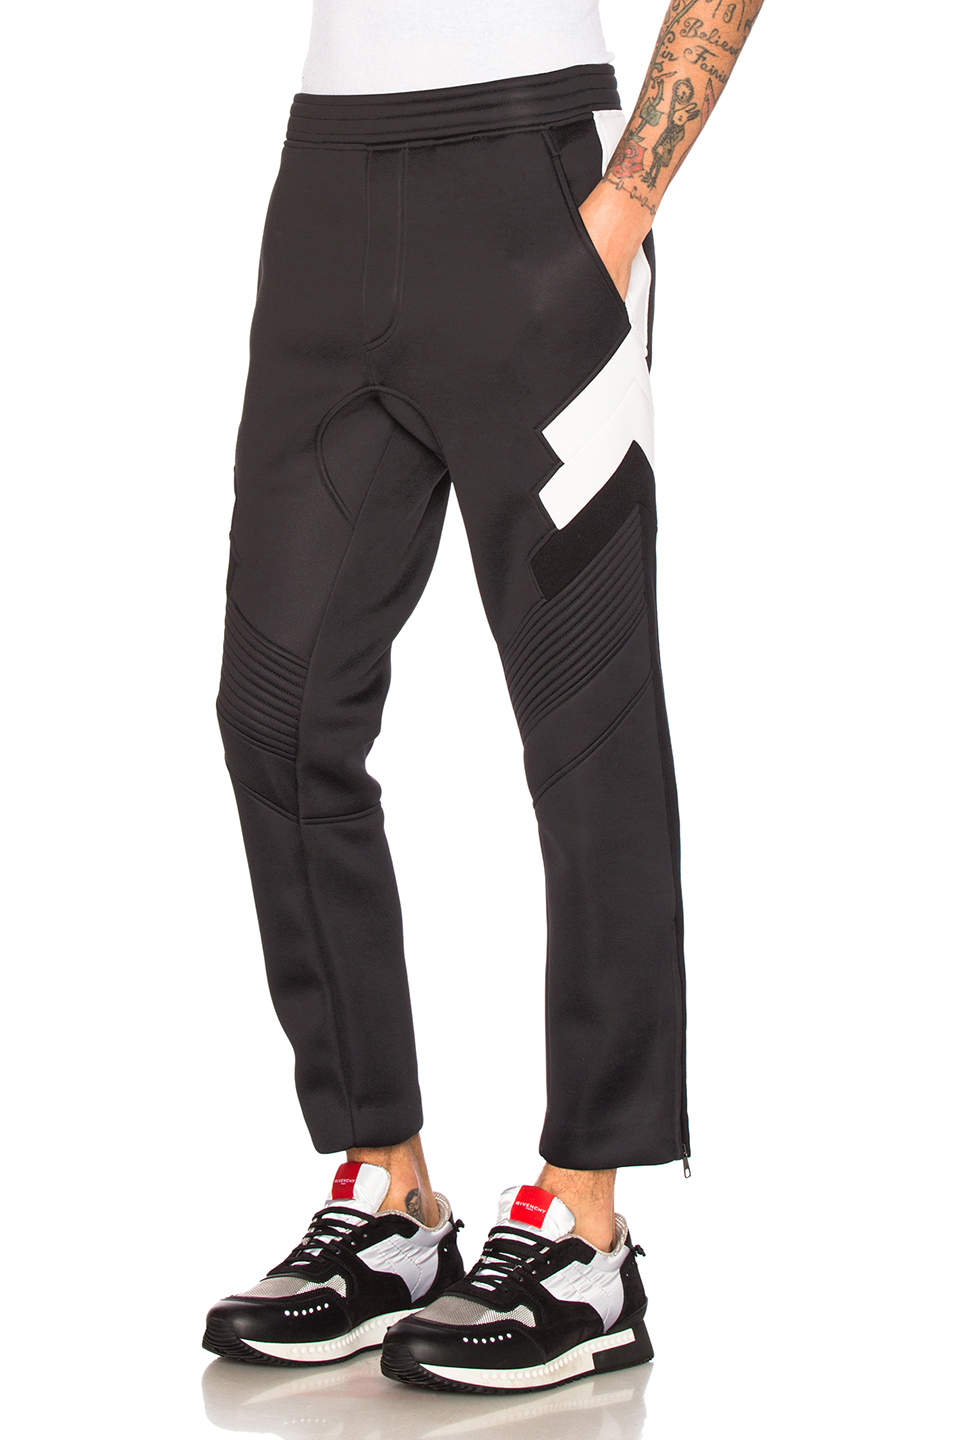 Neil Barrett Biker Sweatpants in Black,White